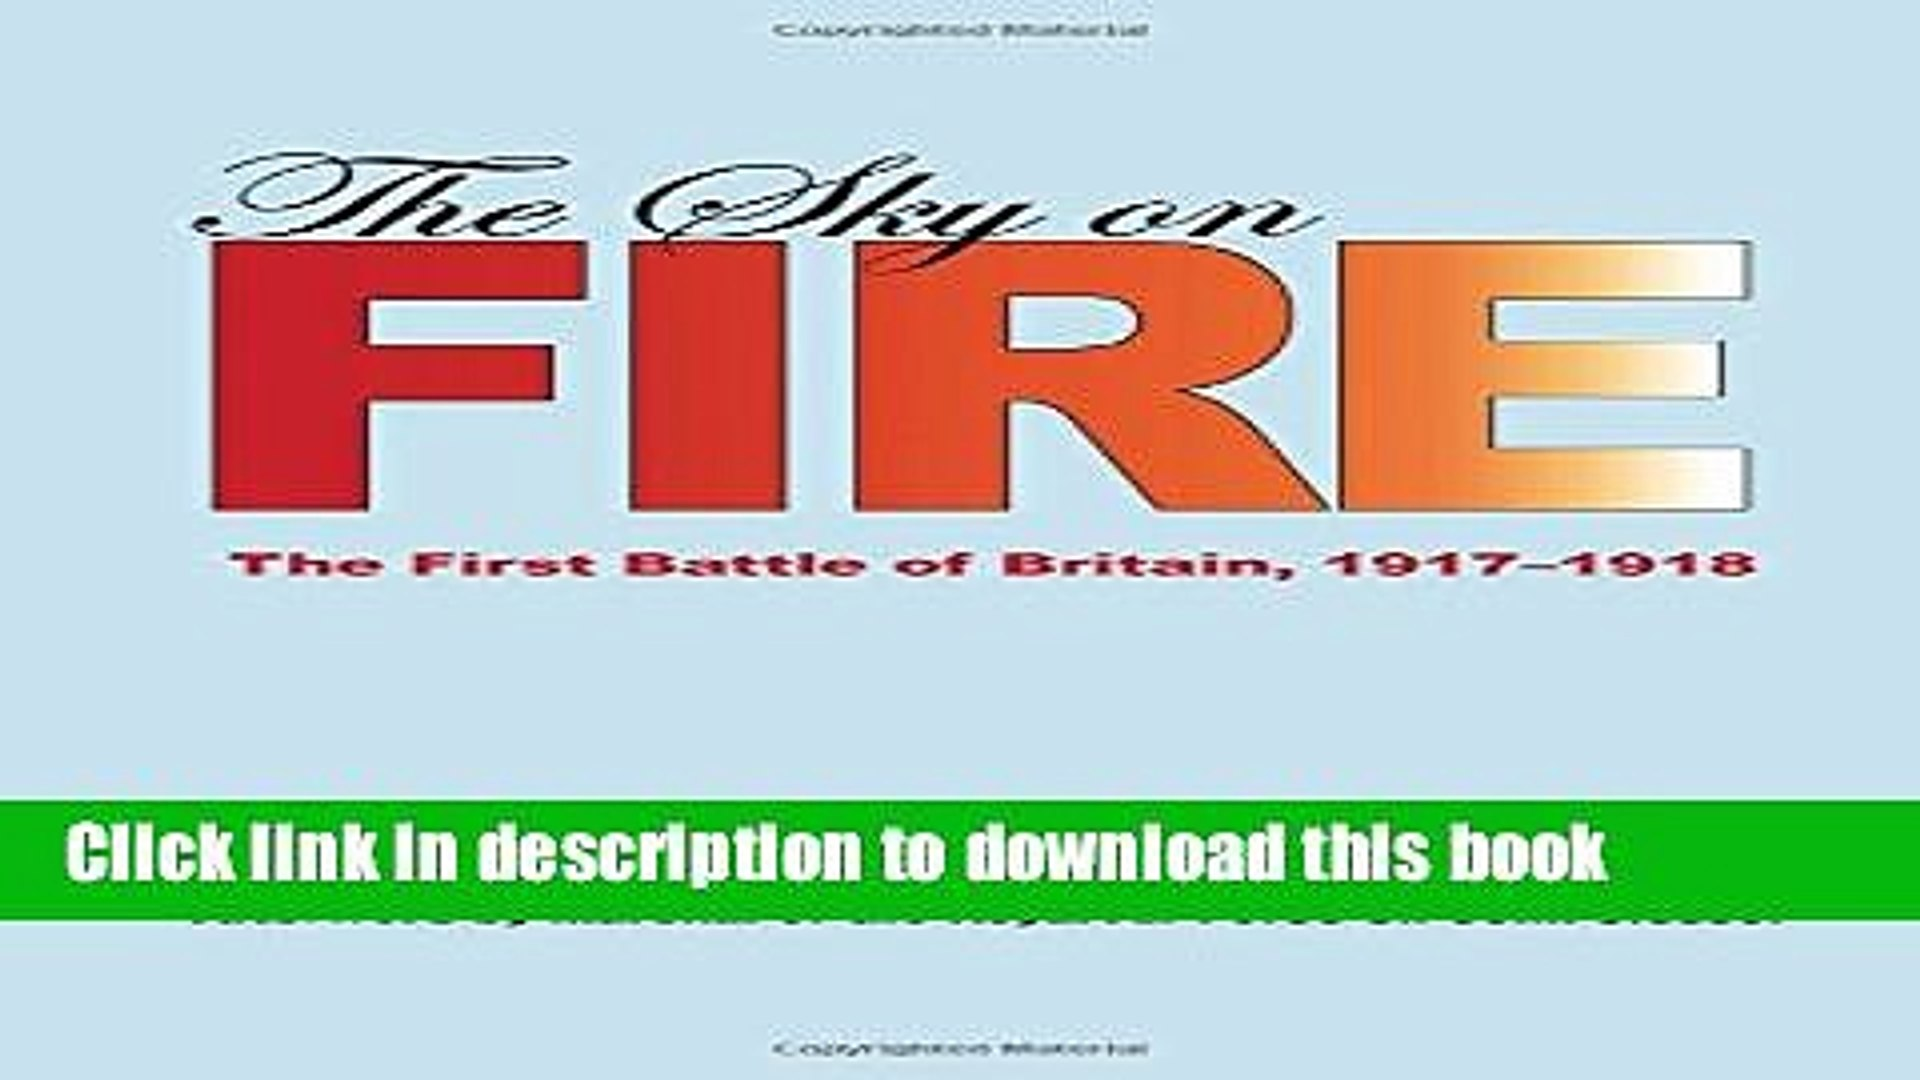 Read The Sky on Fire: The First Battle of Britain, 1917-1918 (Smithsonian History of Aviation)